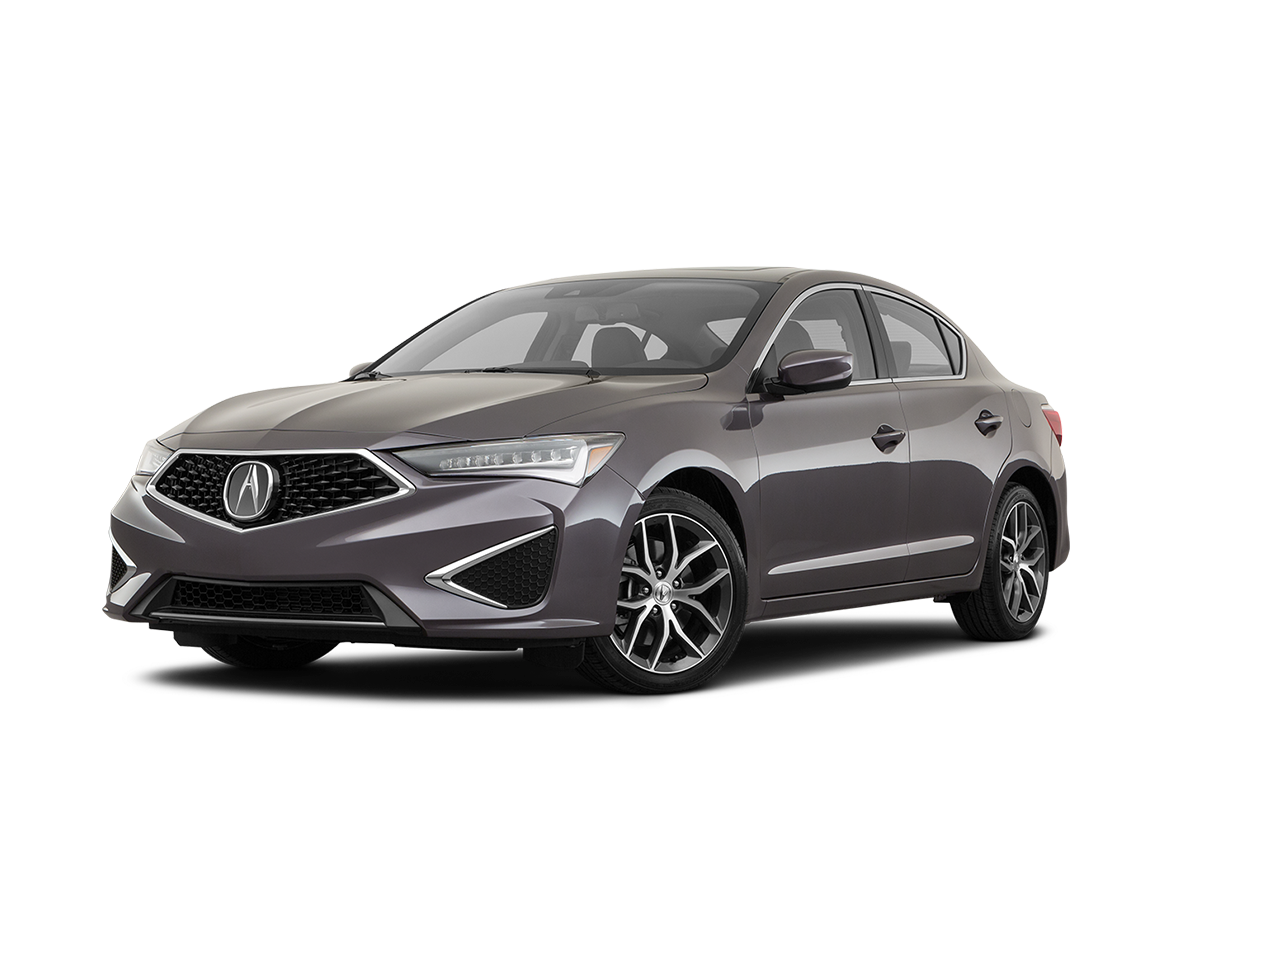 New 2019 ILX with Premium Package